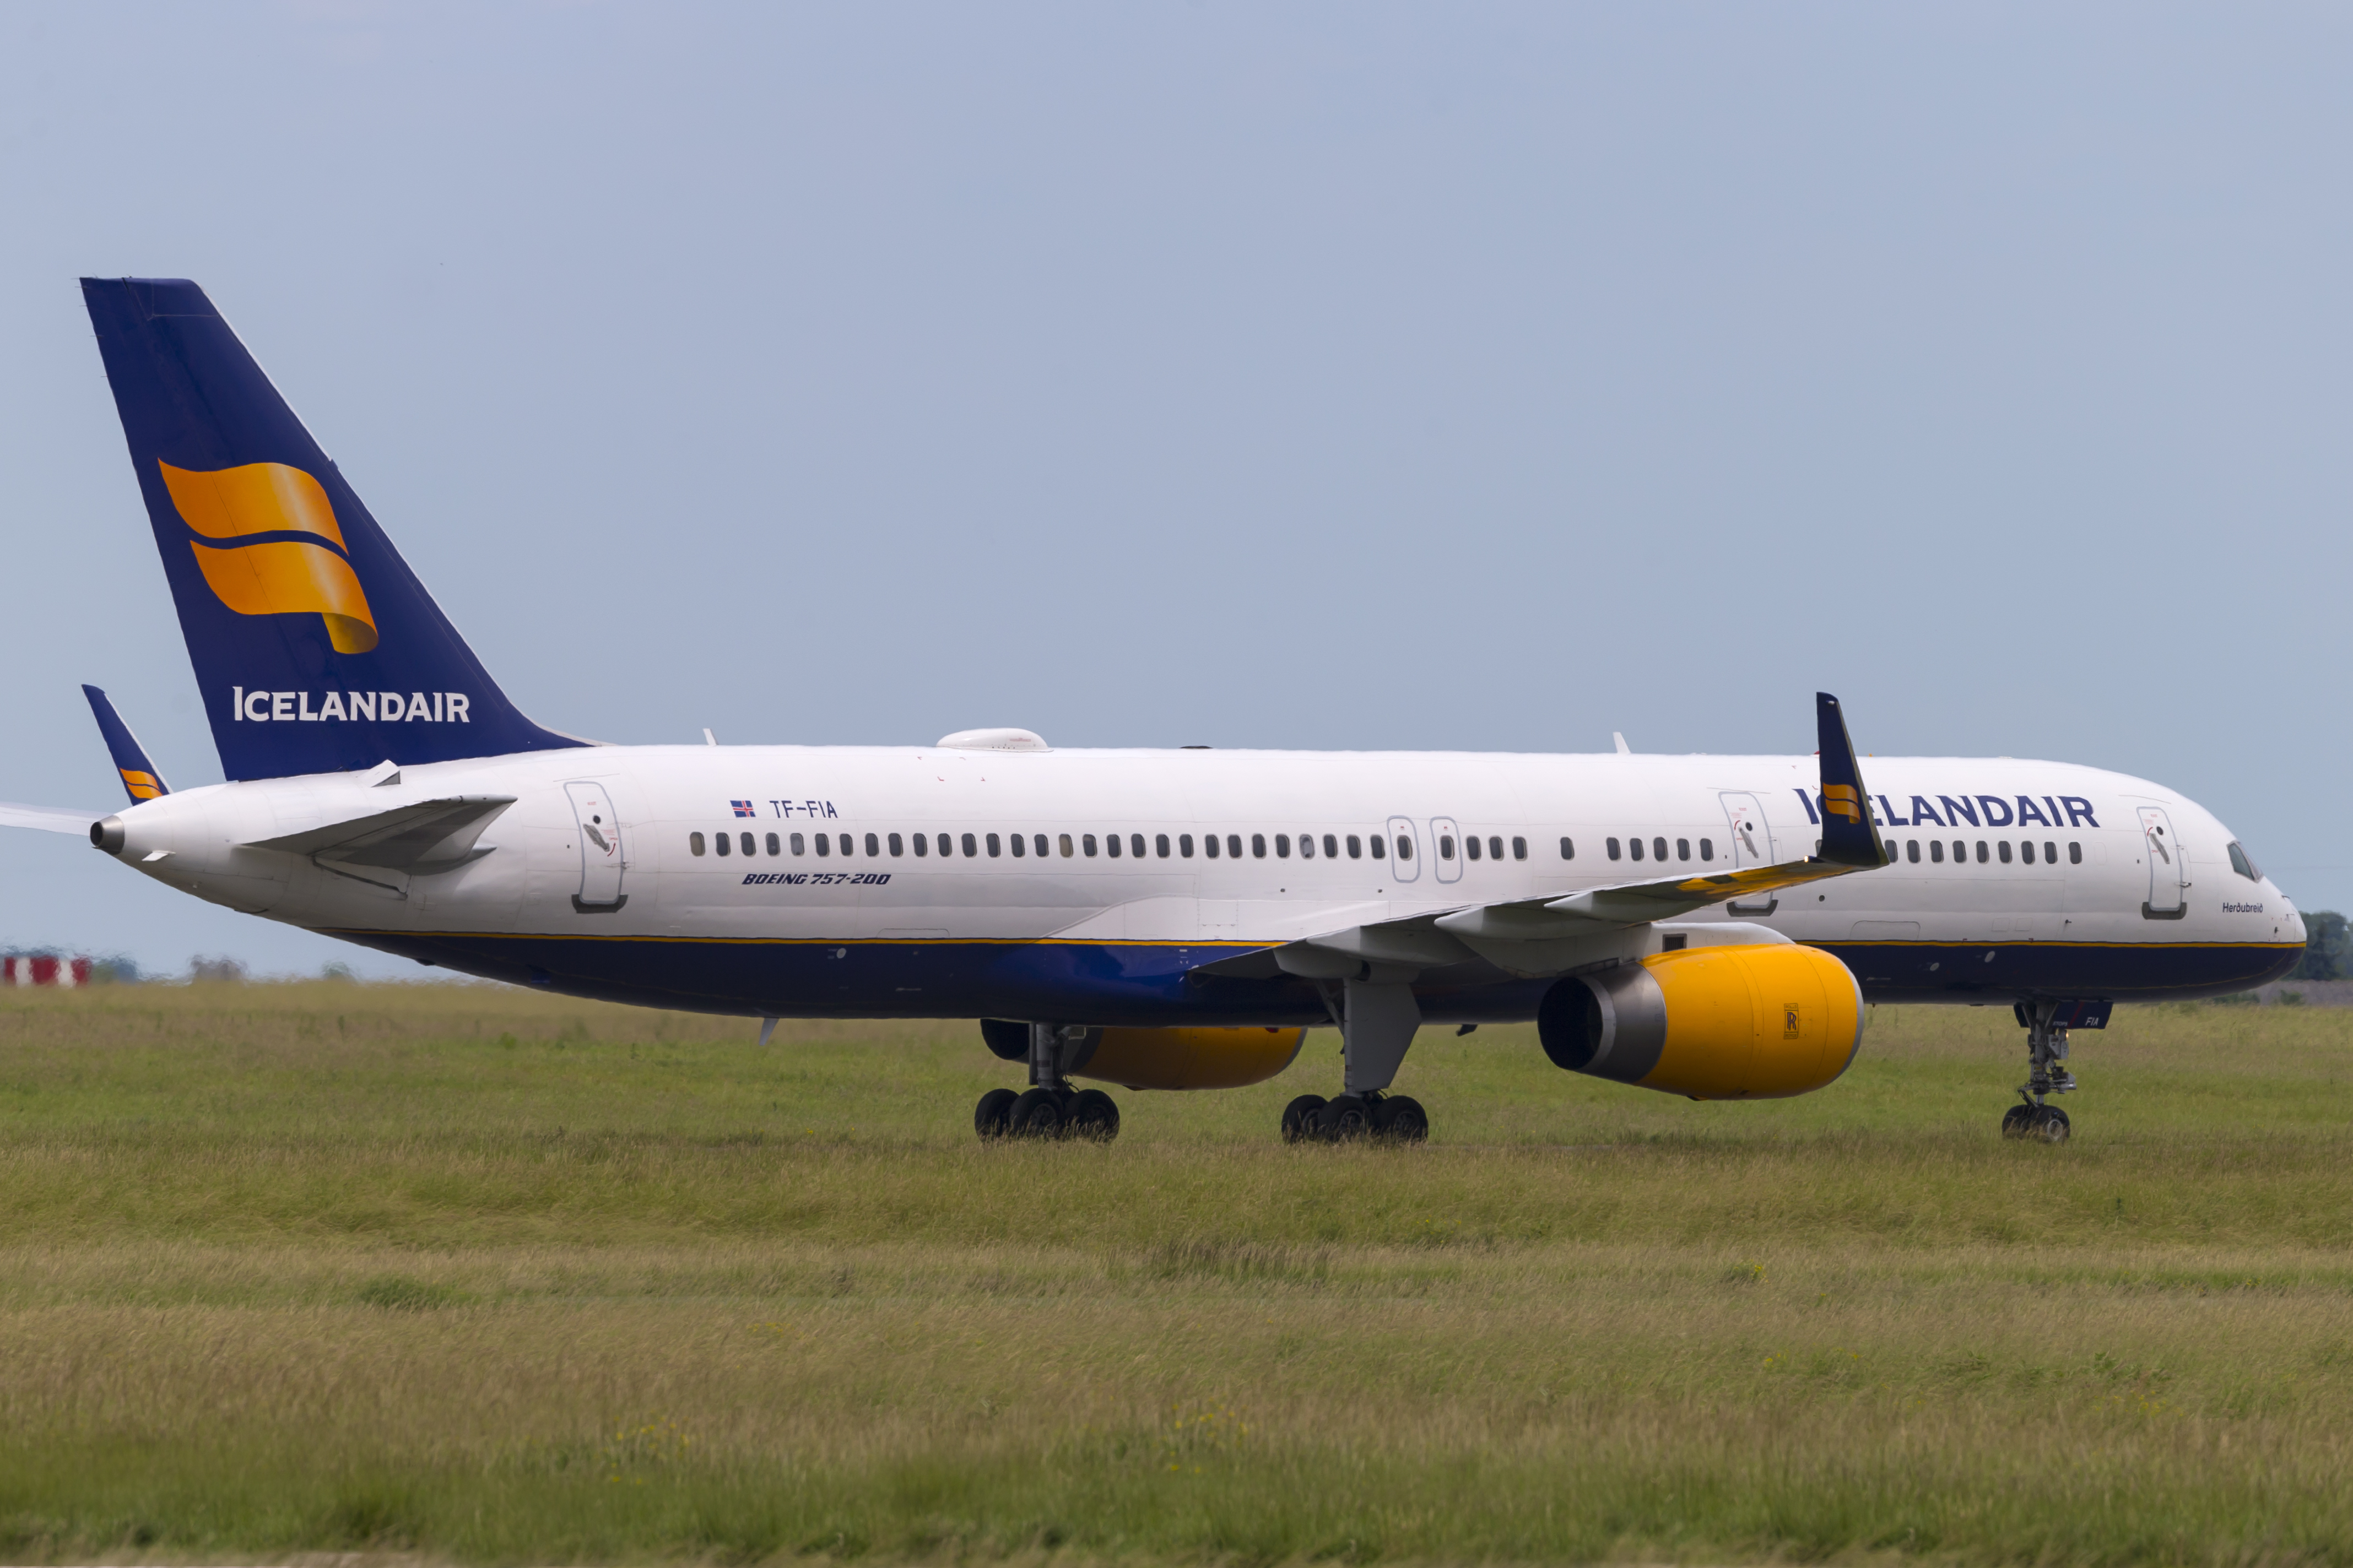 En Boeing 757-200 fra Icelandair. Foto: © Thorbjørn Brunander Sund, Danish Aviation Photo